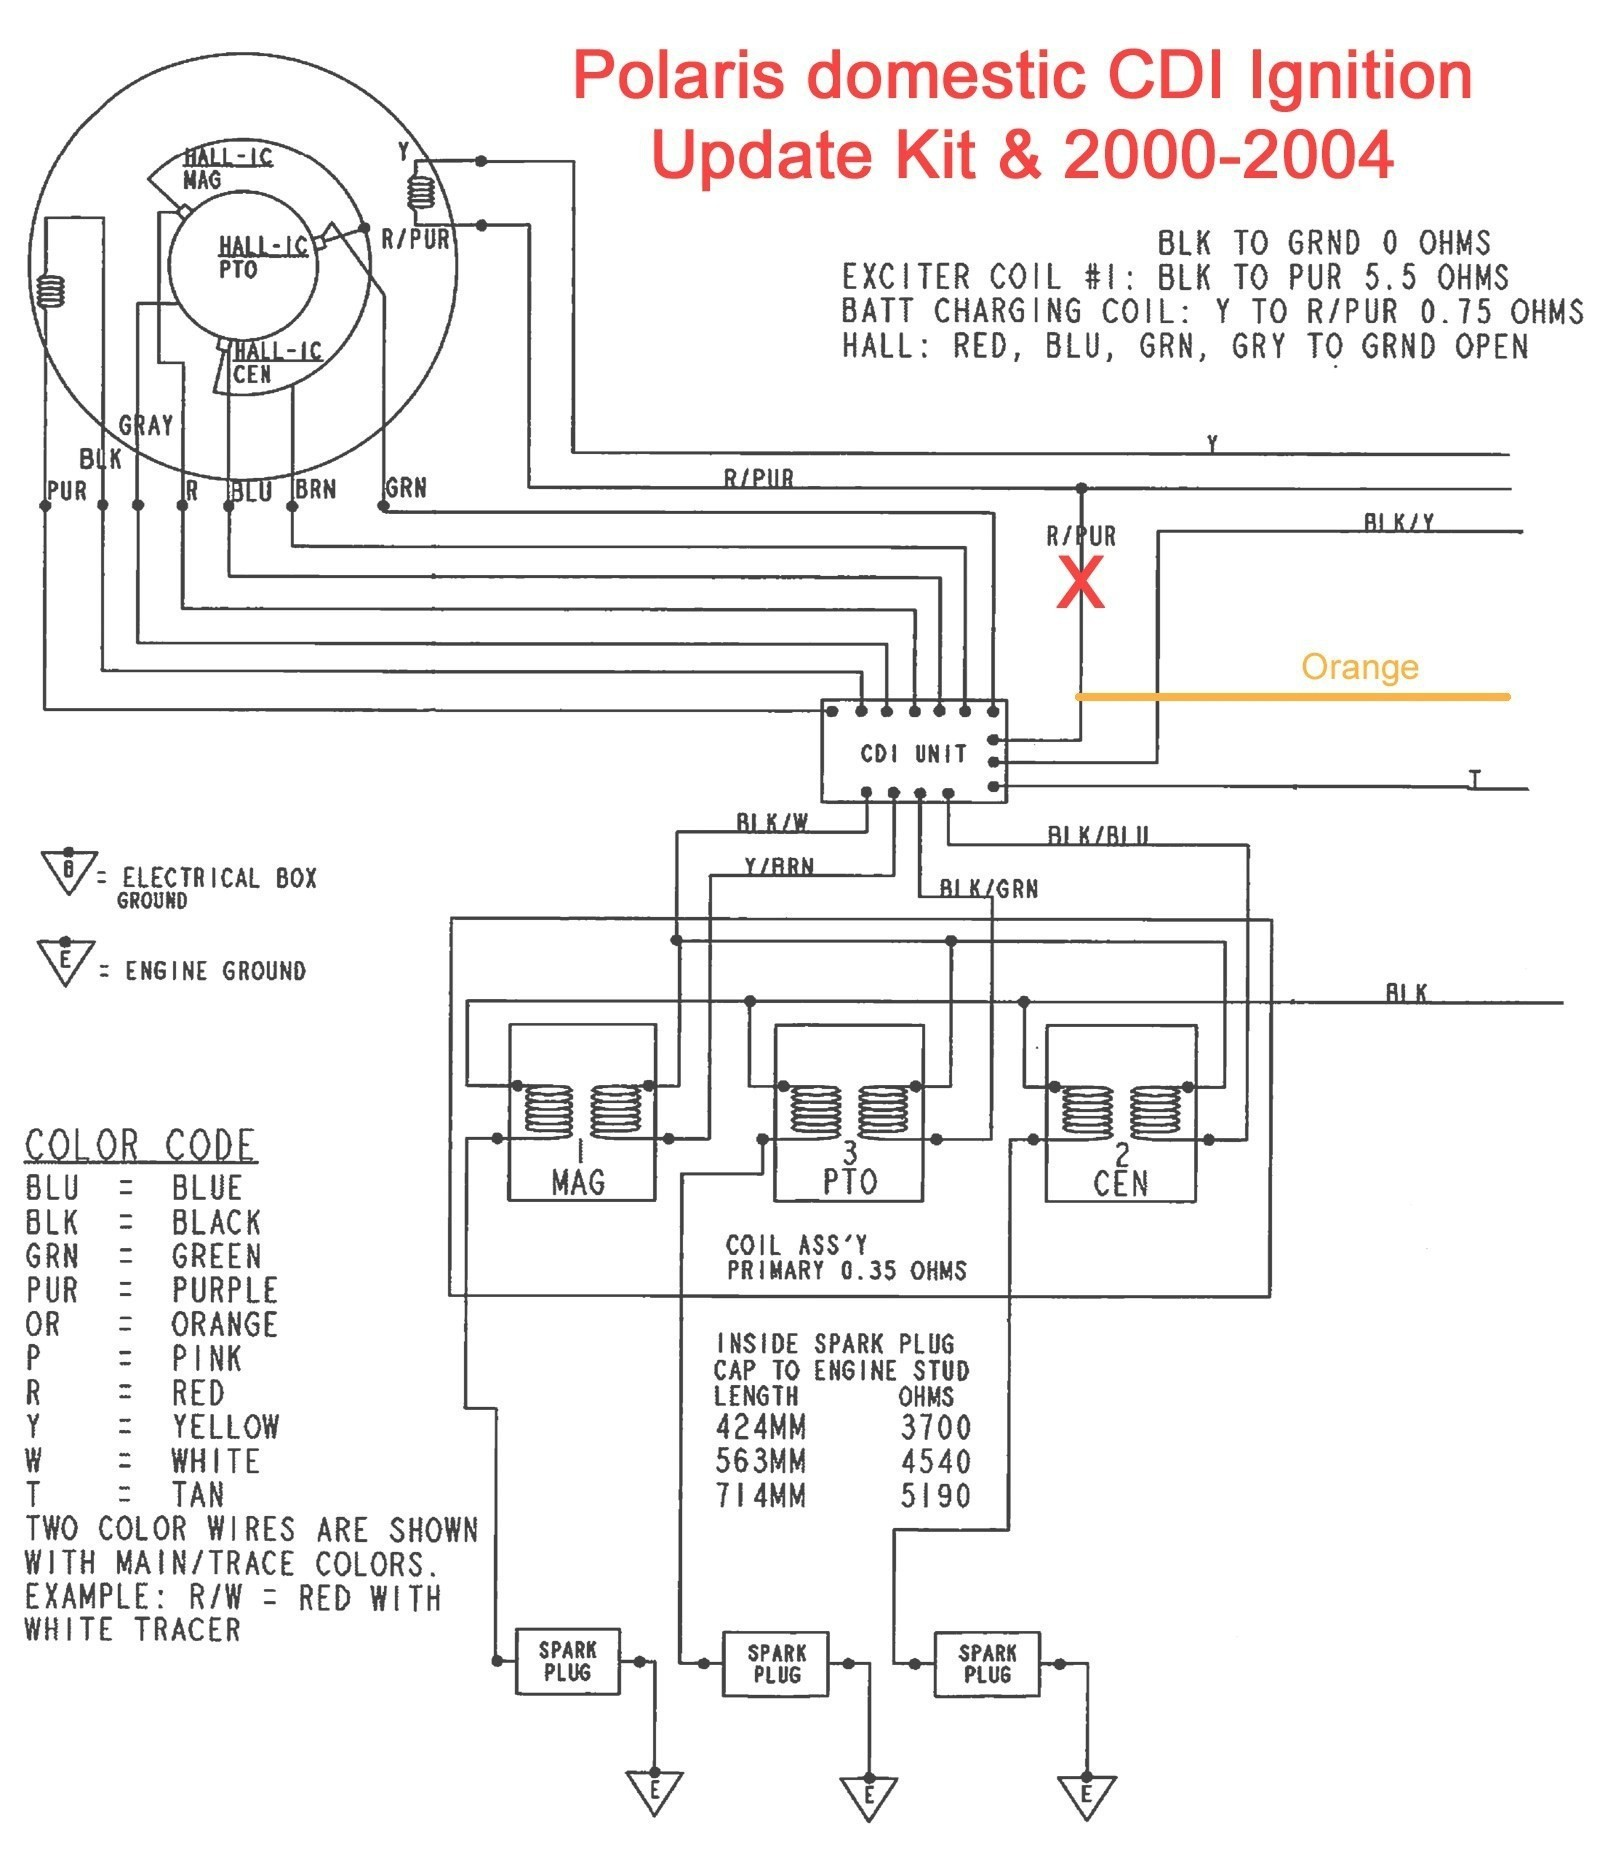 110 Block Wiring Diagram Detailed Schematic Diagrams Rj45 Jb6 A Portal U2022 Punch